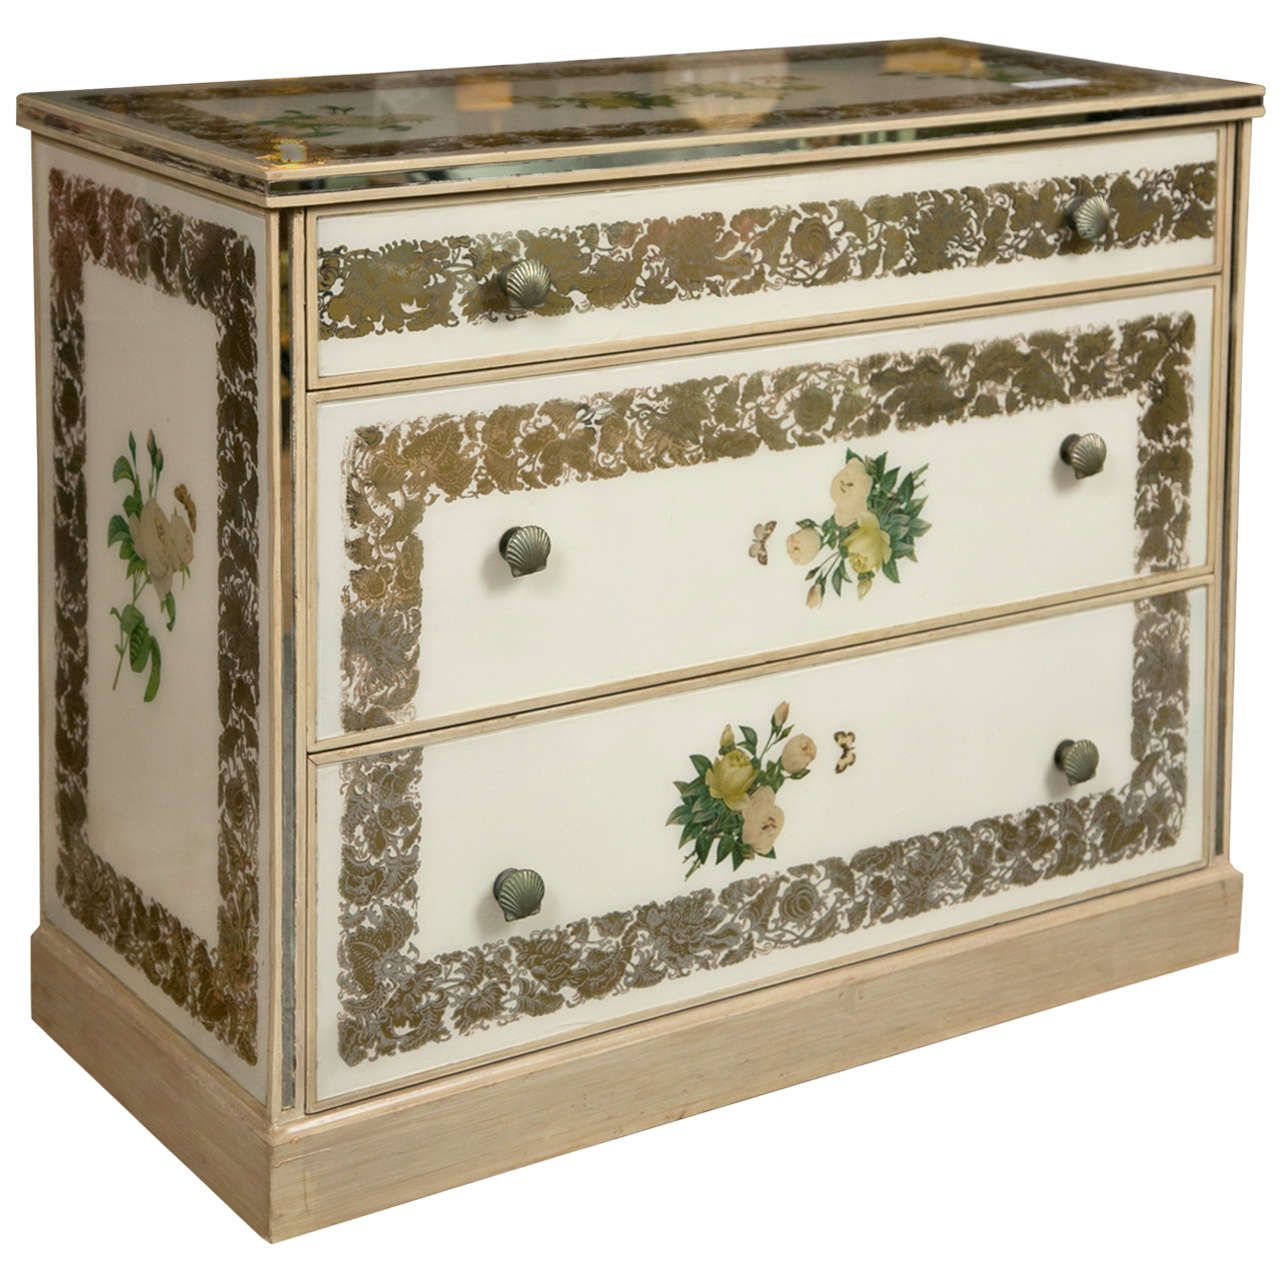 Art Deco Style Polychromed Mirrored Chest of Drawers Commode Night Stand